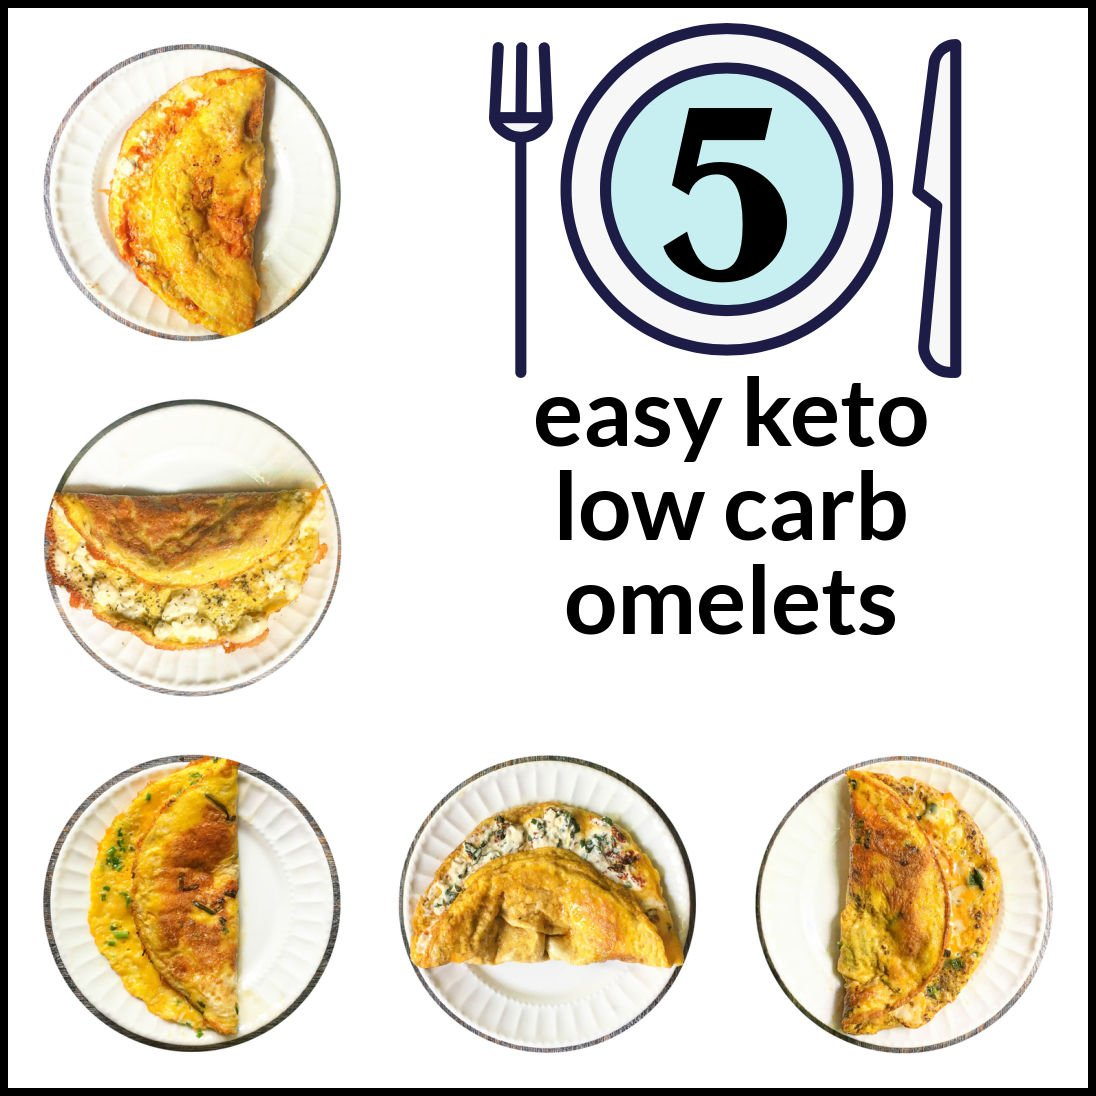 collage of 5 keto omelets on while plates with text overlay